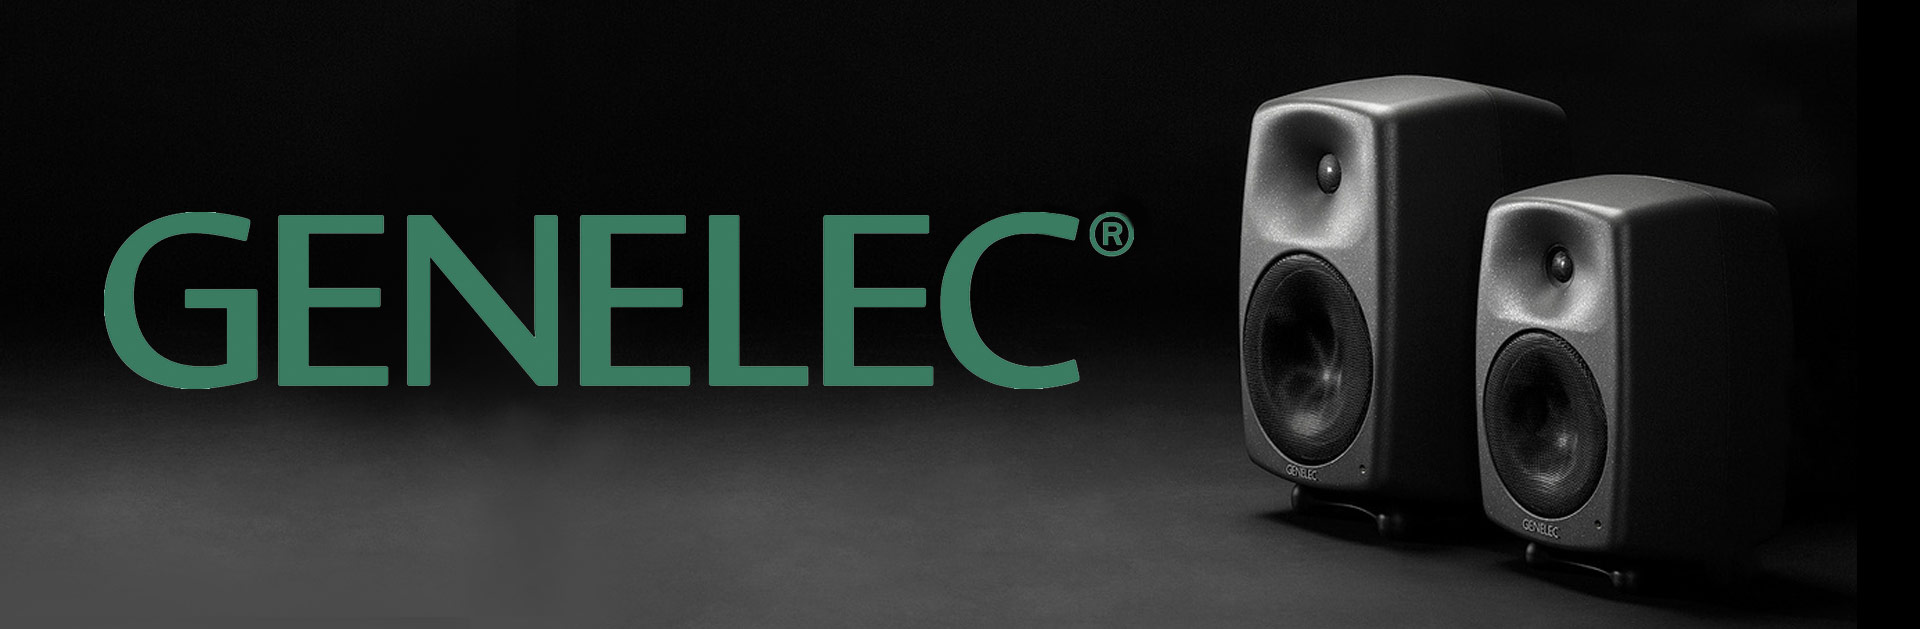 Why Buy Genelec